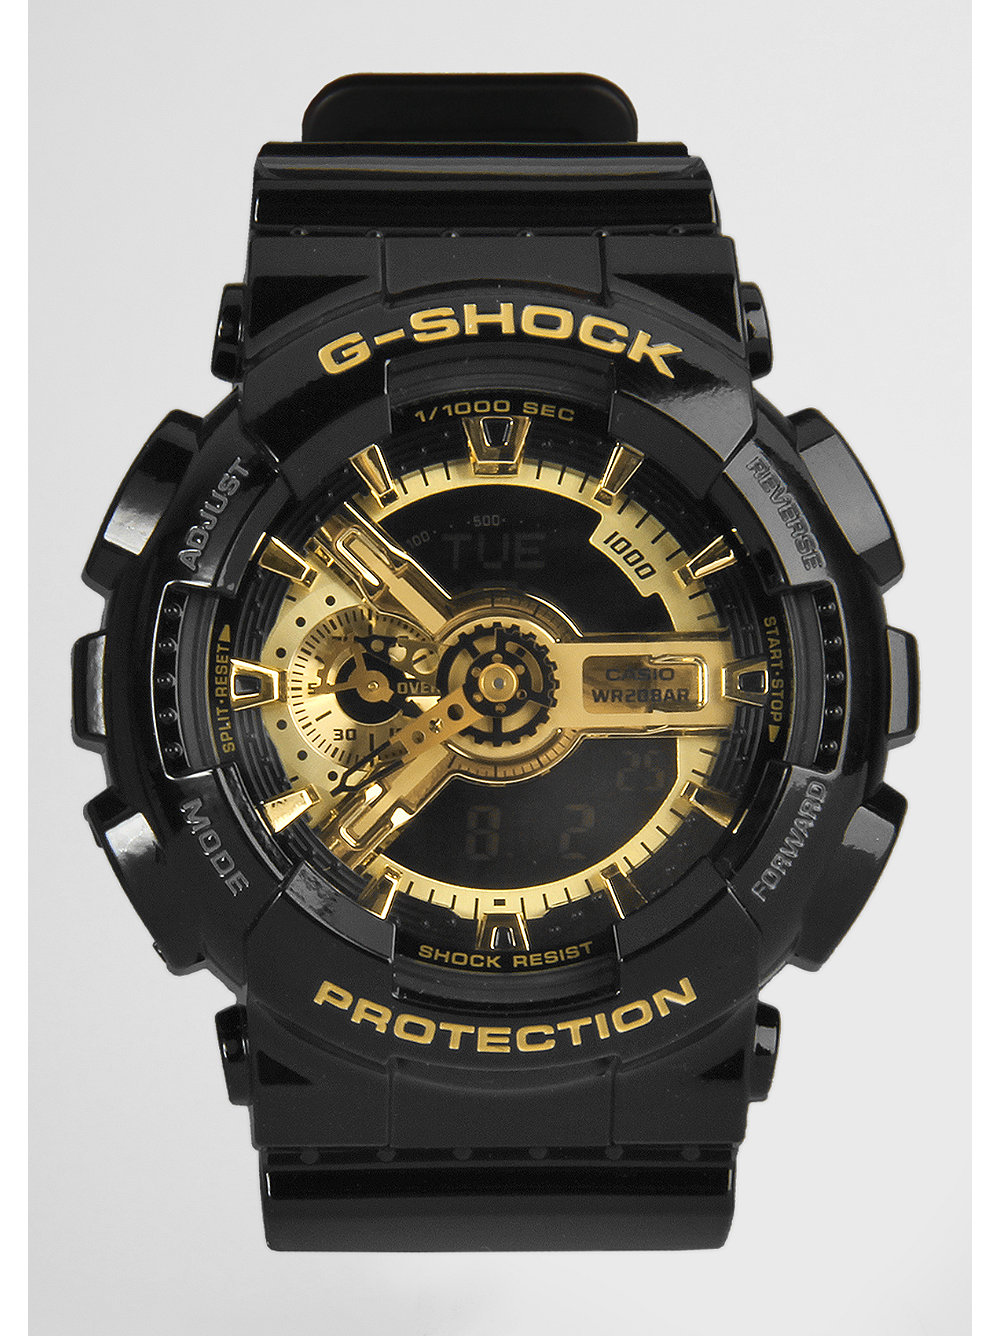 g shock uhr ga 110gb 1aer bei snipes bestellen. Black Bedroom Furniture Sets. Home Design Ideas